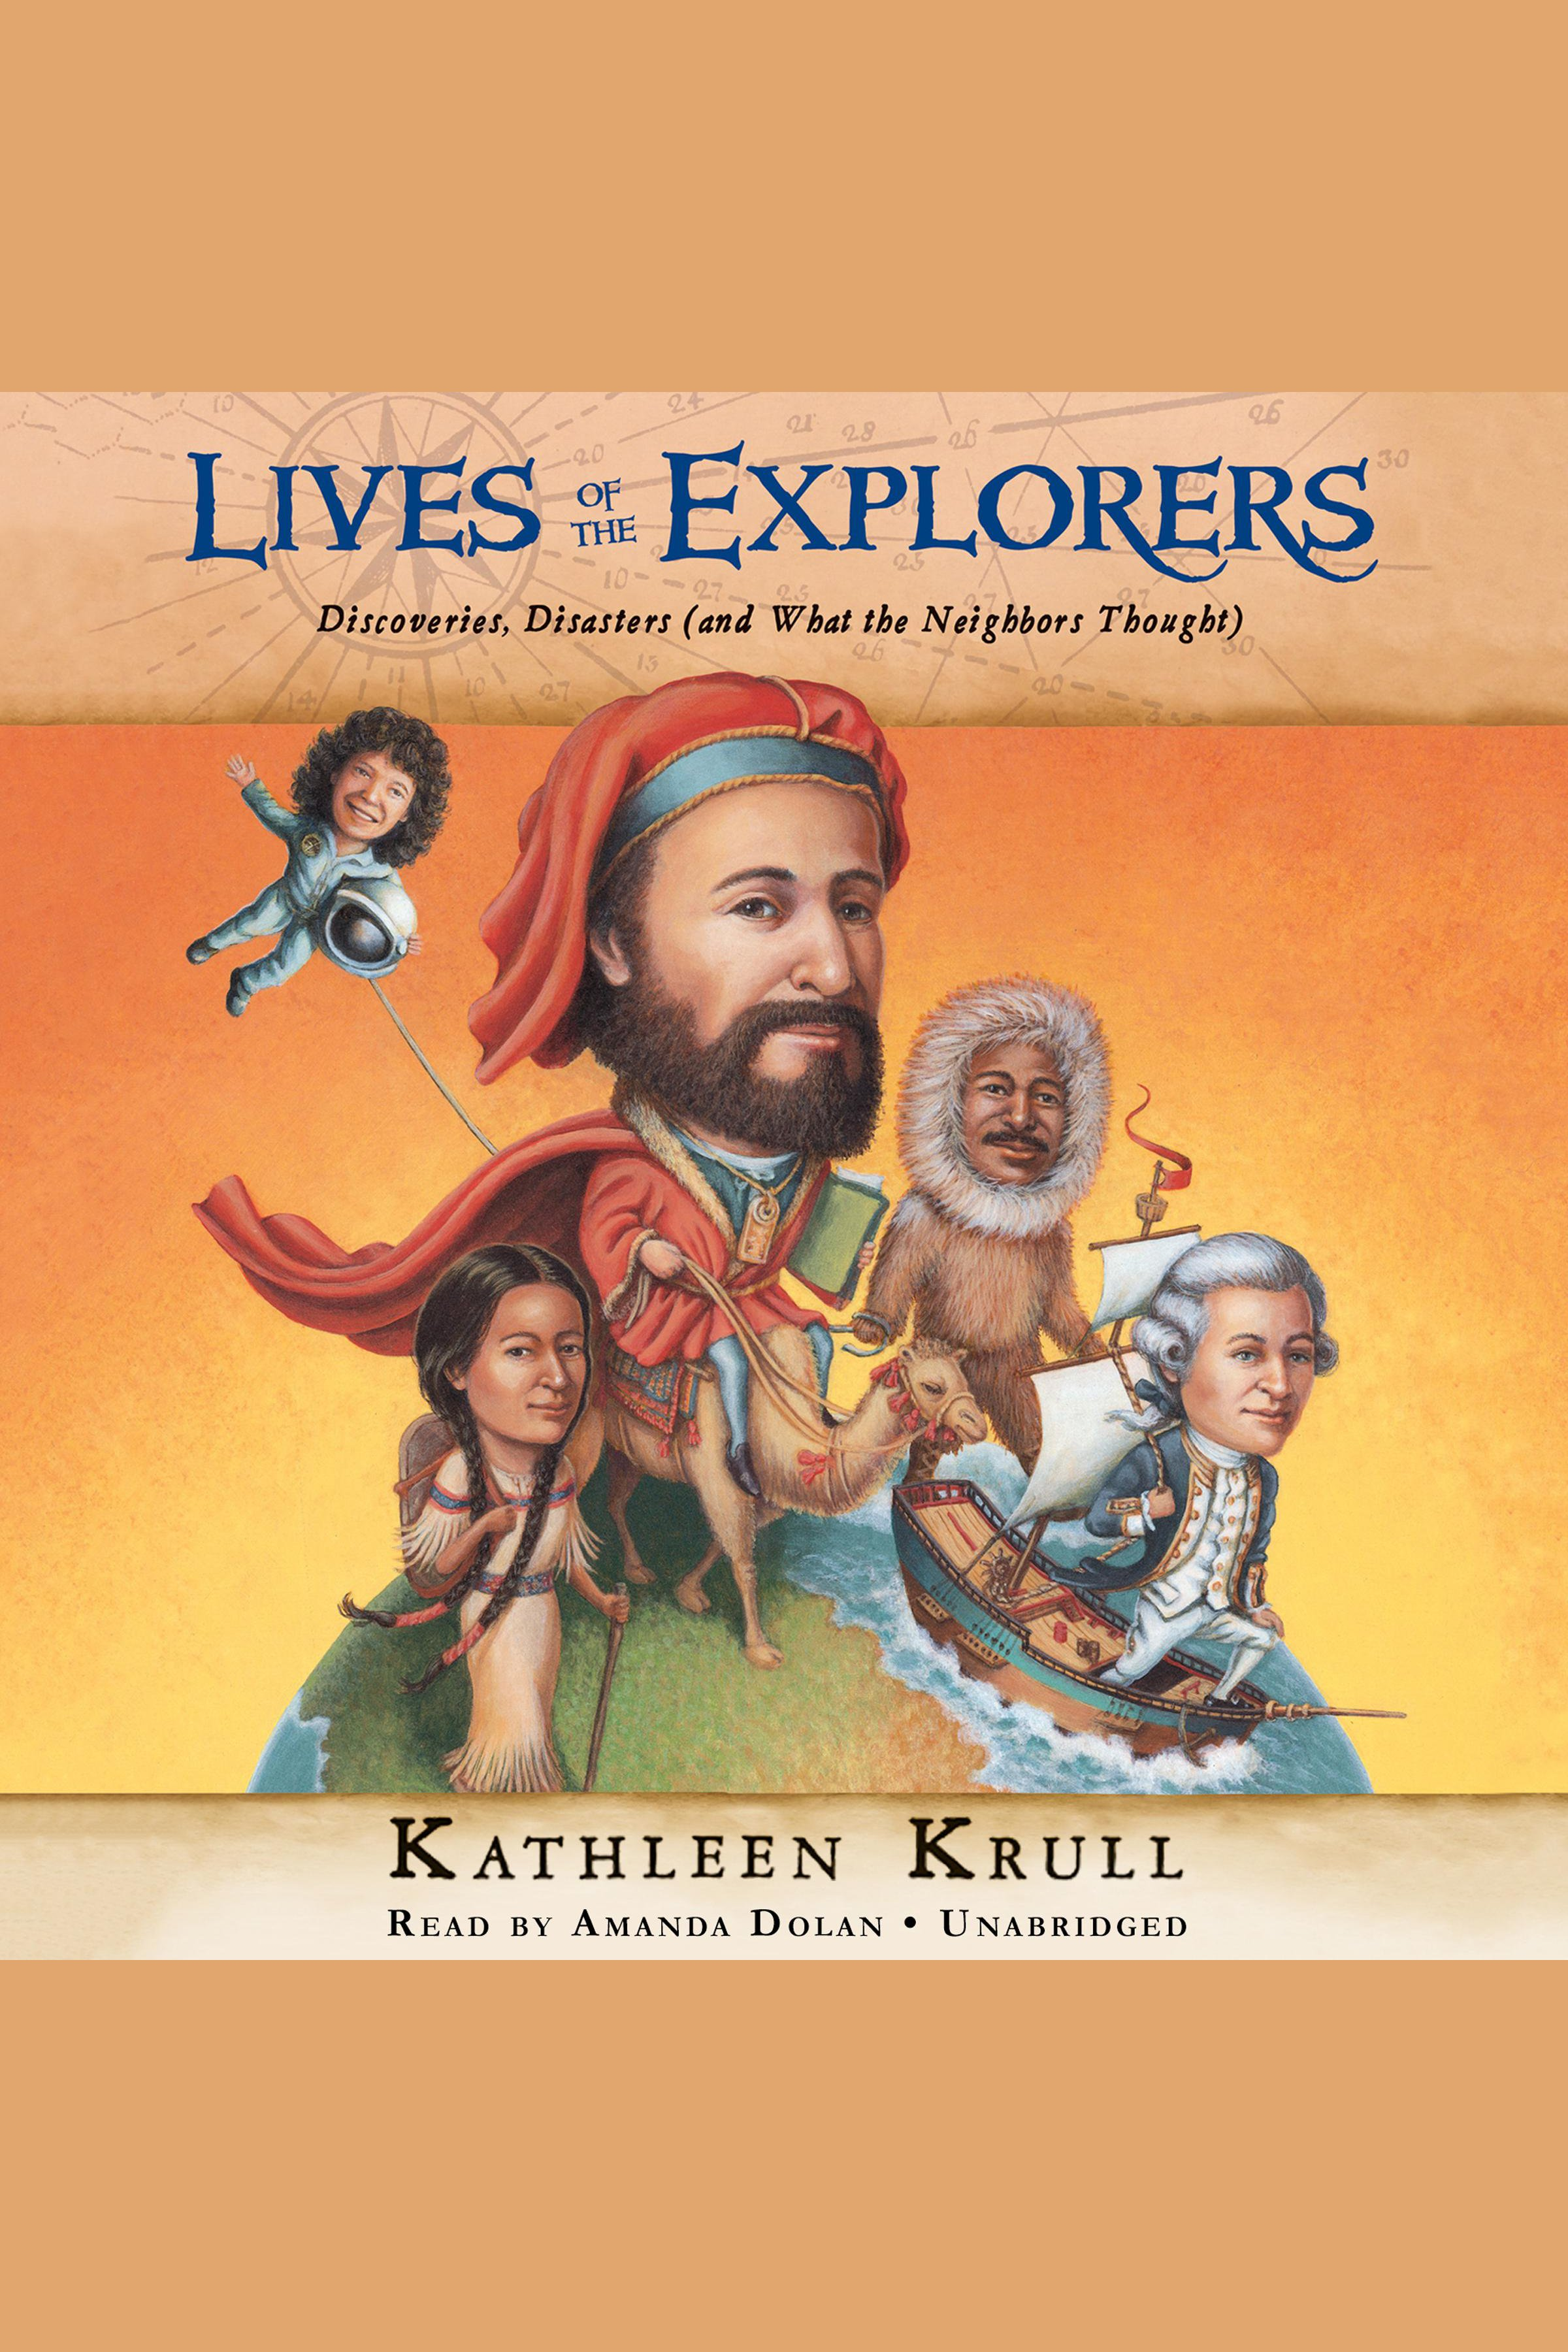 Lives of the explorers discoveries, disasters (and what the neighbors thought) cover image